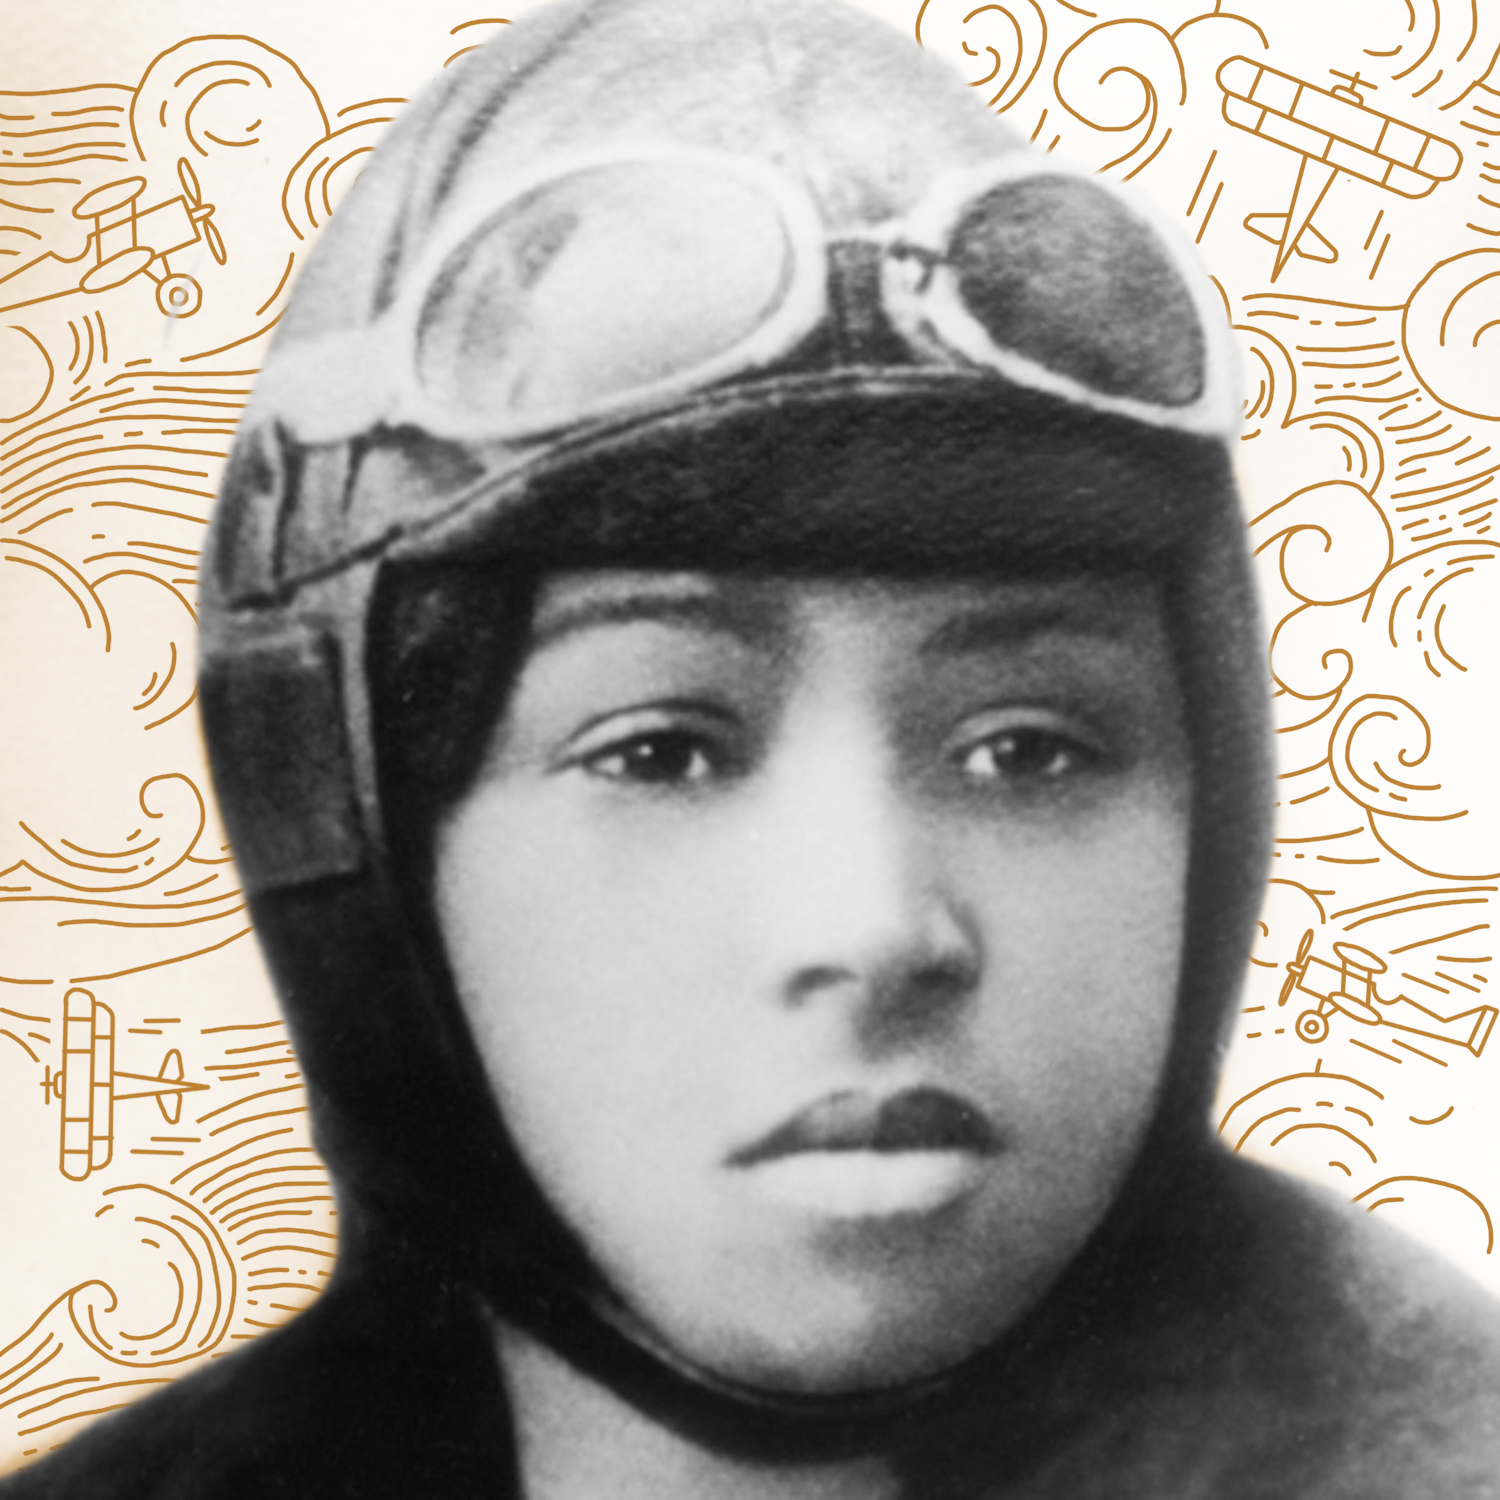 Bessie Coleman   When Coleman was unable to find a mentor or teacher in Chicago to help her get her pilot's license, she went to France, where she became the first African-American woman to earn an international pilot's license. After founding an aviation school. Coleman made it her life's work to inspire other members of the black community to take up an interest in aviation.